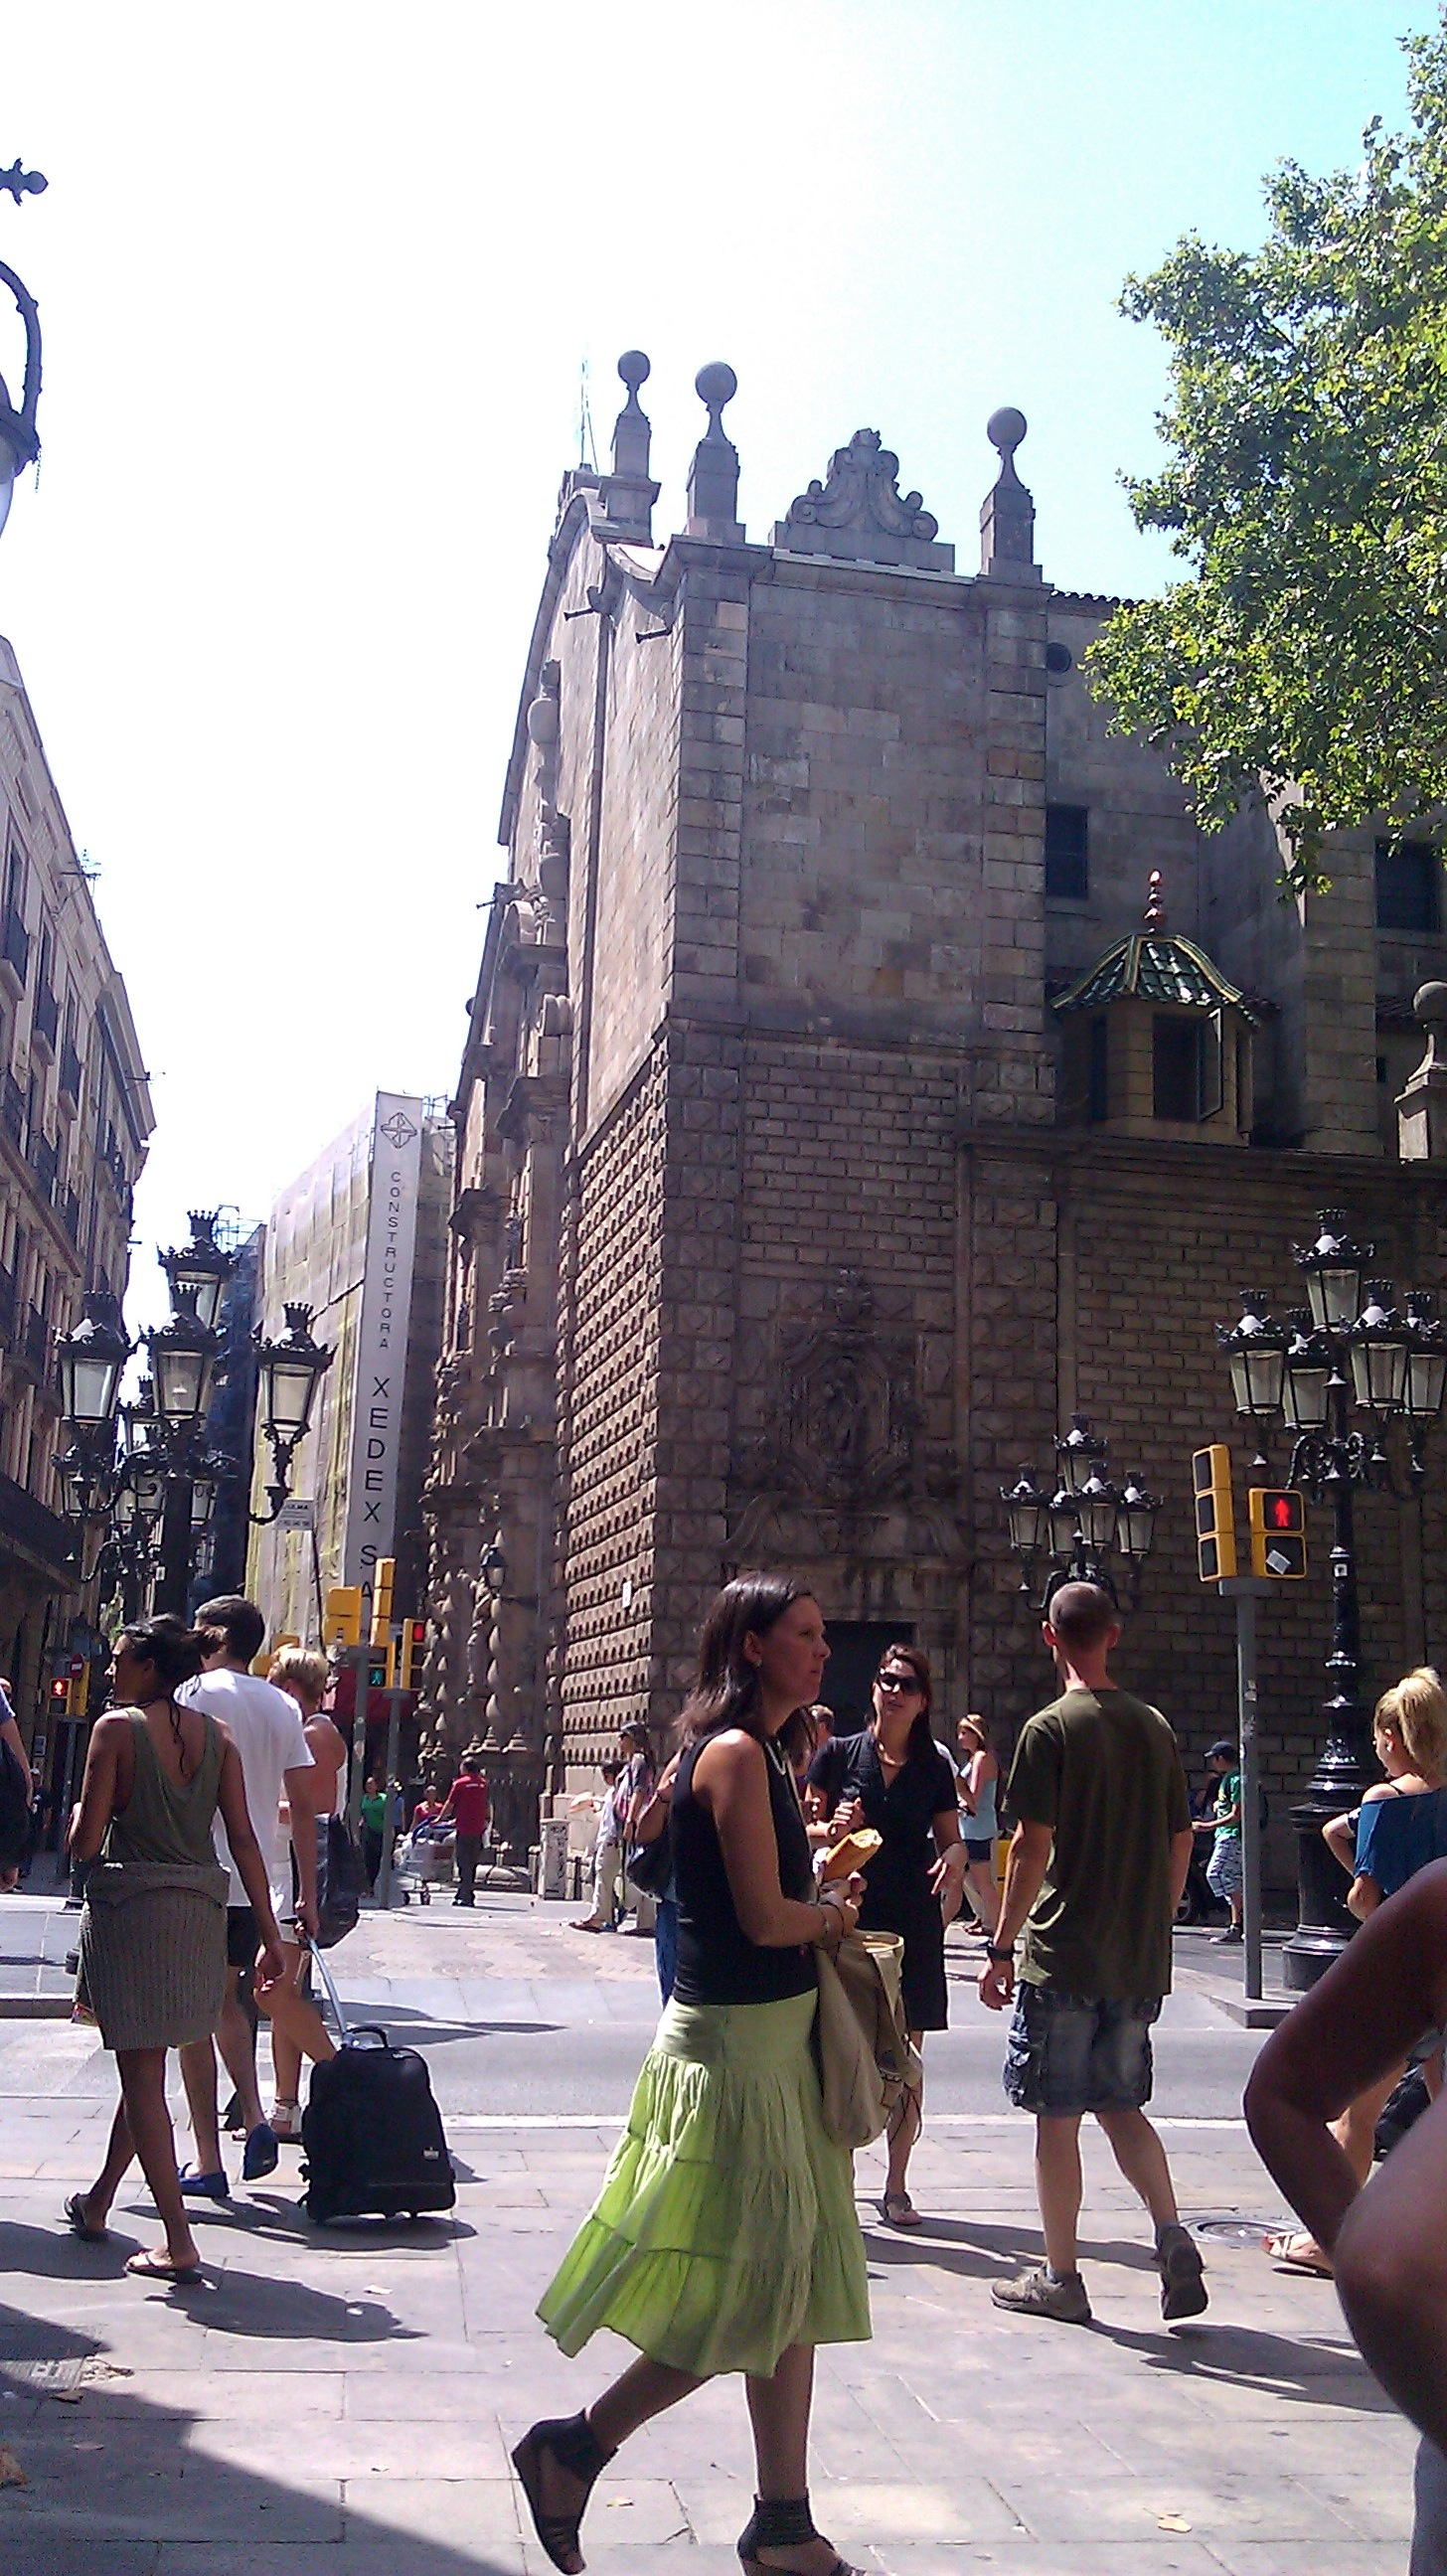 Barcelona-Old-City.jpg